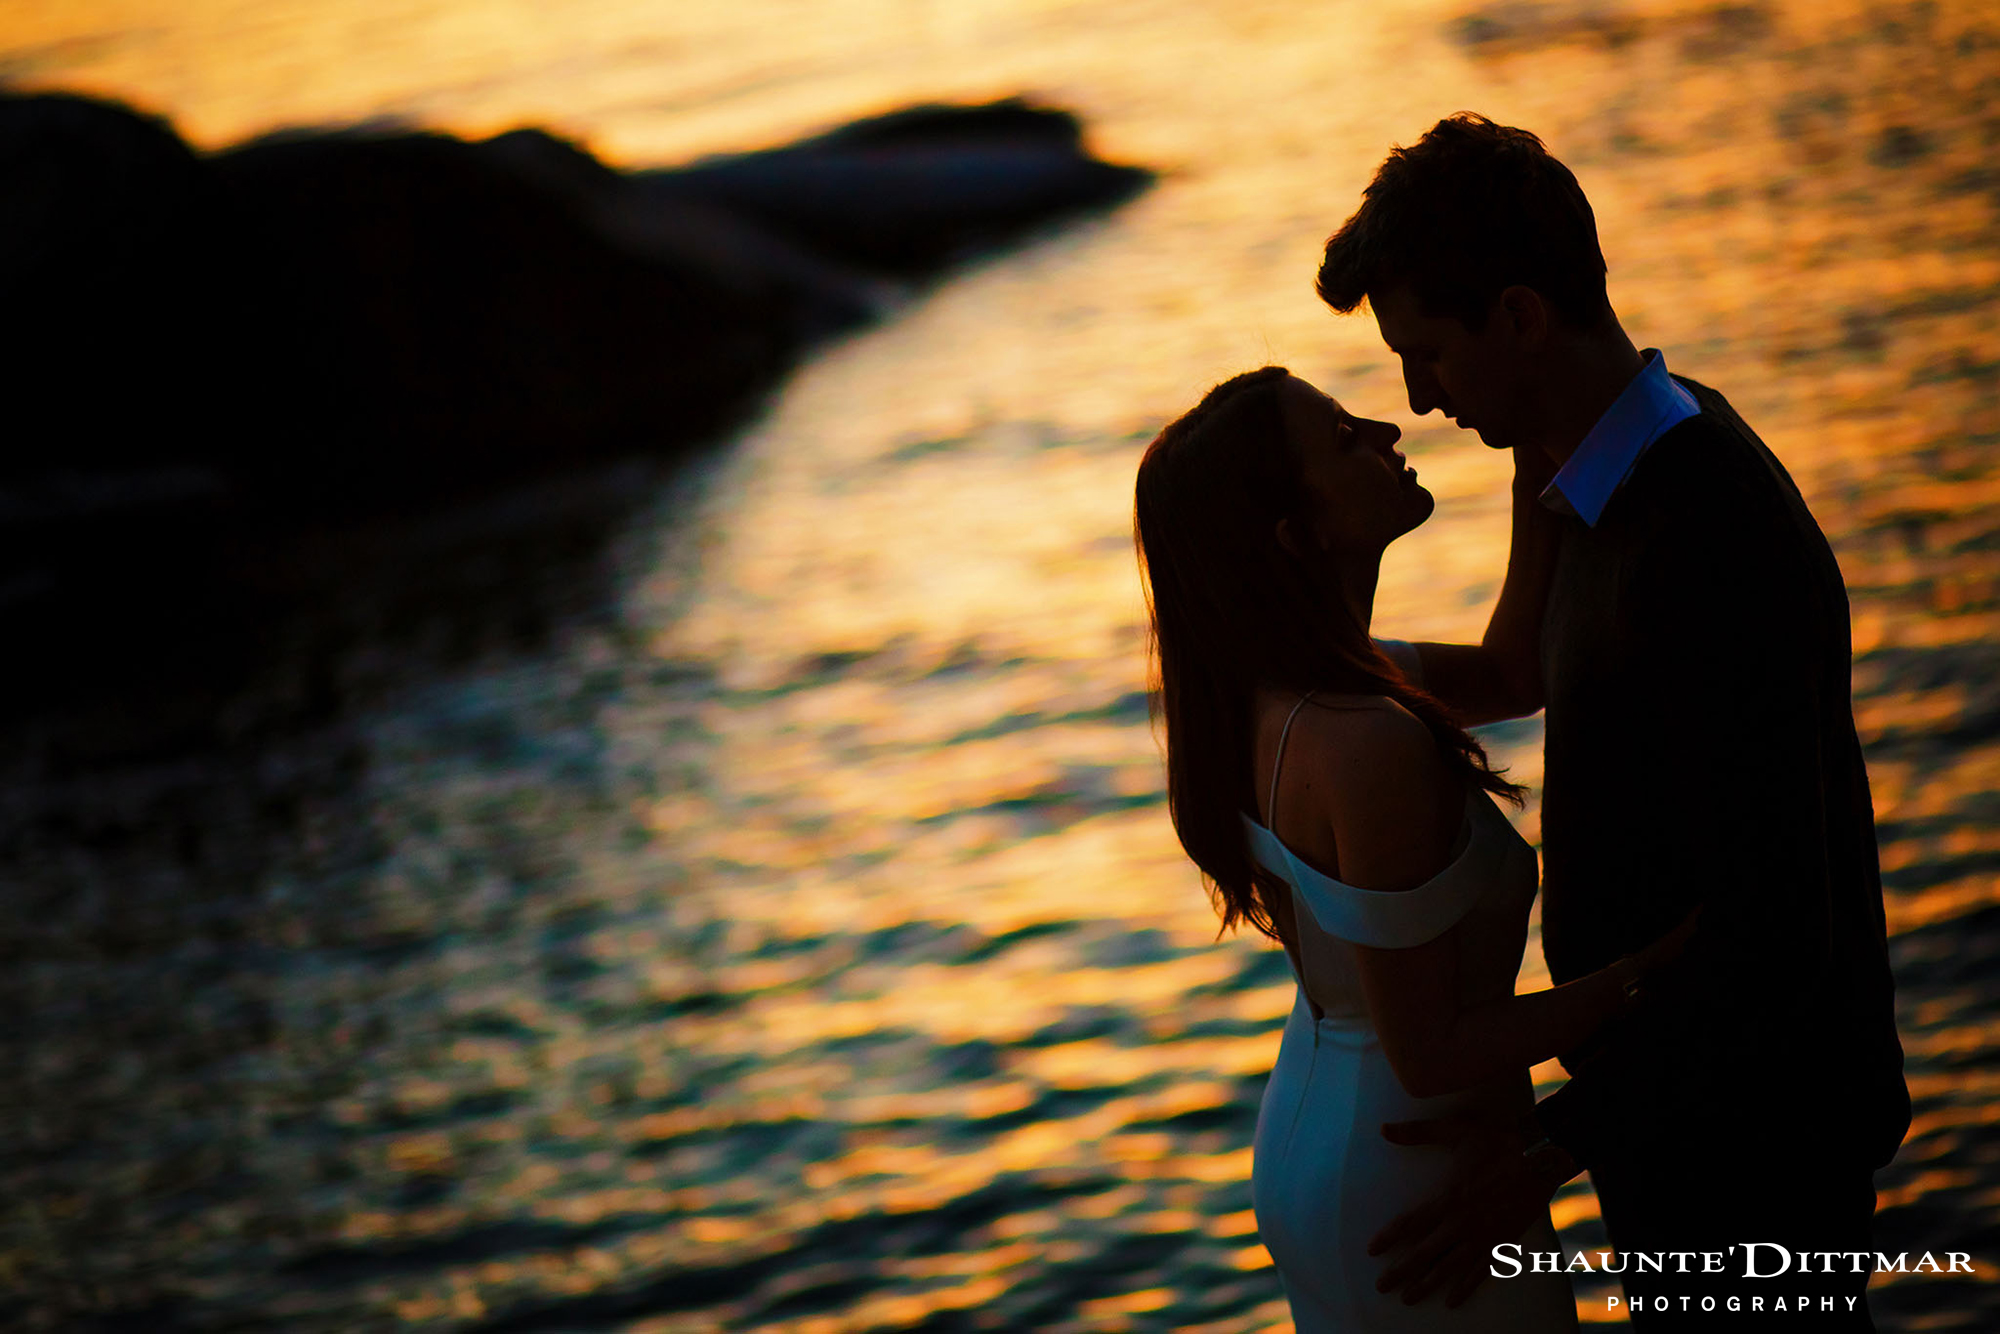 Kim_Daniel_359_Bonzai_Rock_Engagement_Lake_Tahoe_Shaunte_Dittmar_Photography.jpg